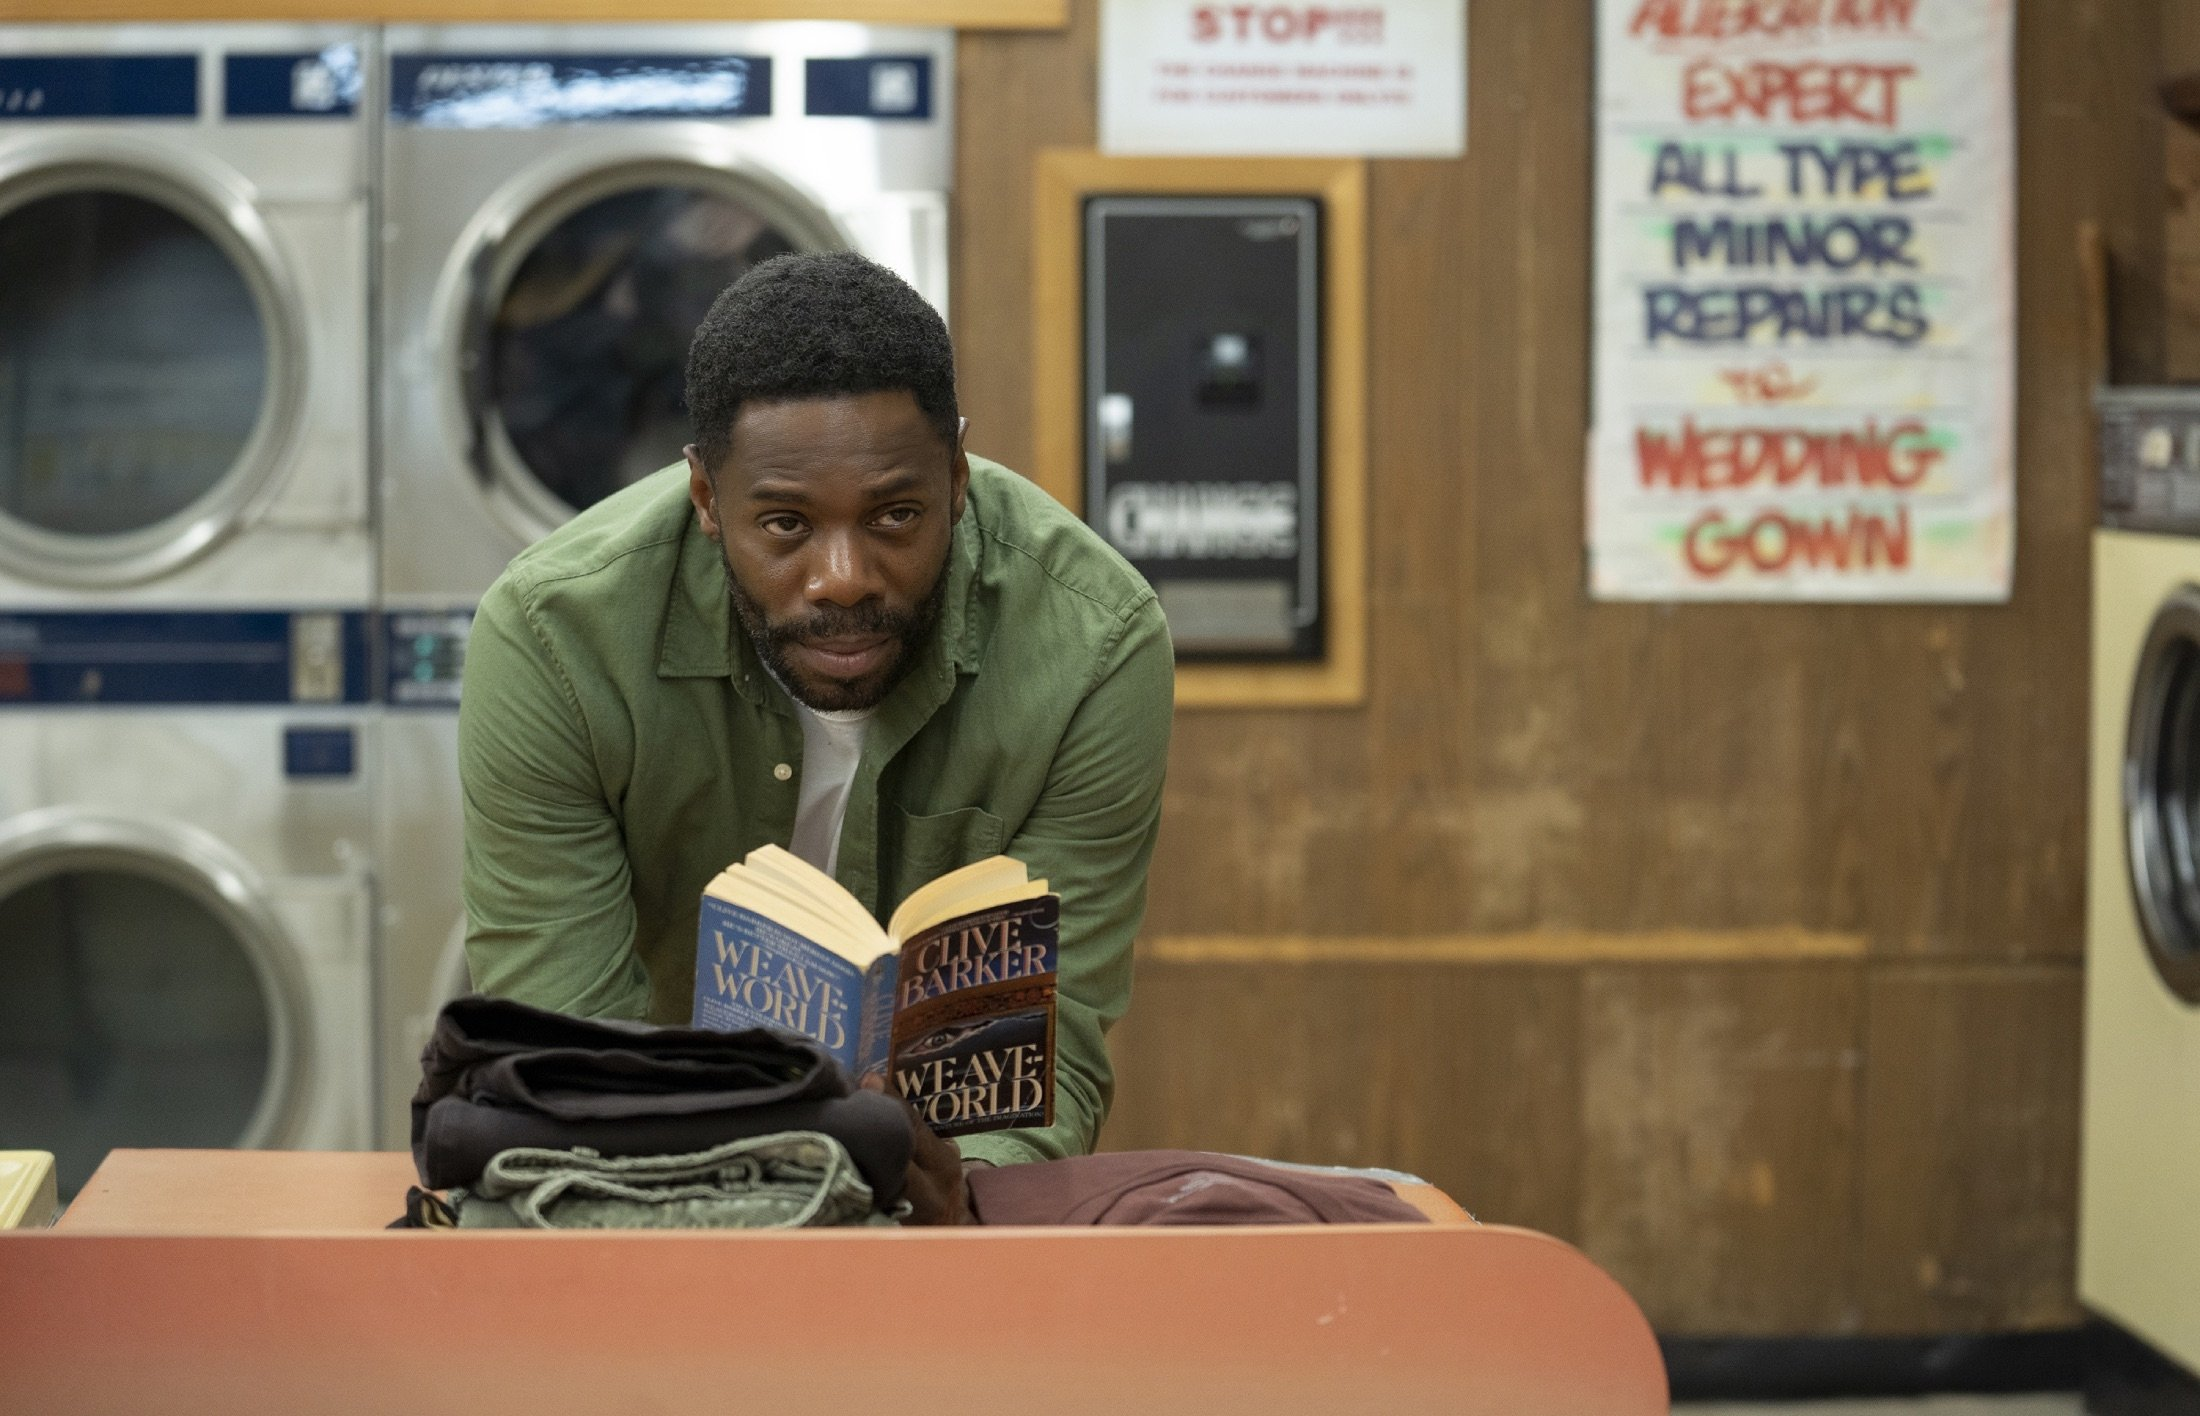 """Colman Domingo asWilliam Burke looks up from a book, in a scene from the film """"Candyman,""""directed by Nia DaCosta. (AP Photo)"""